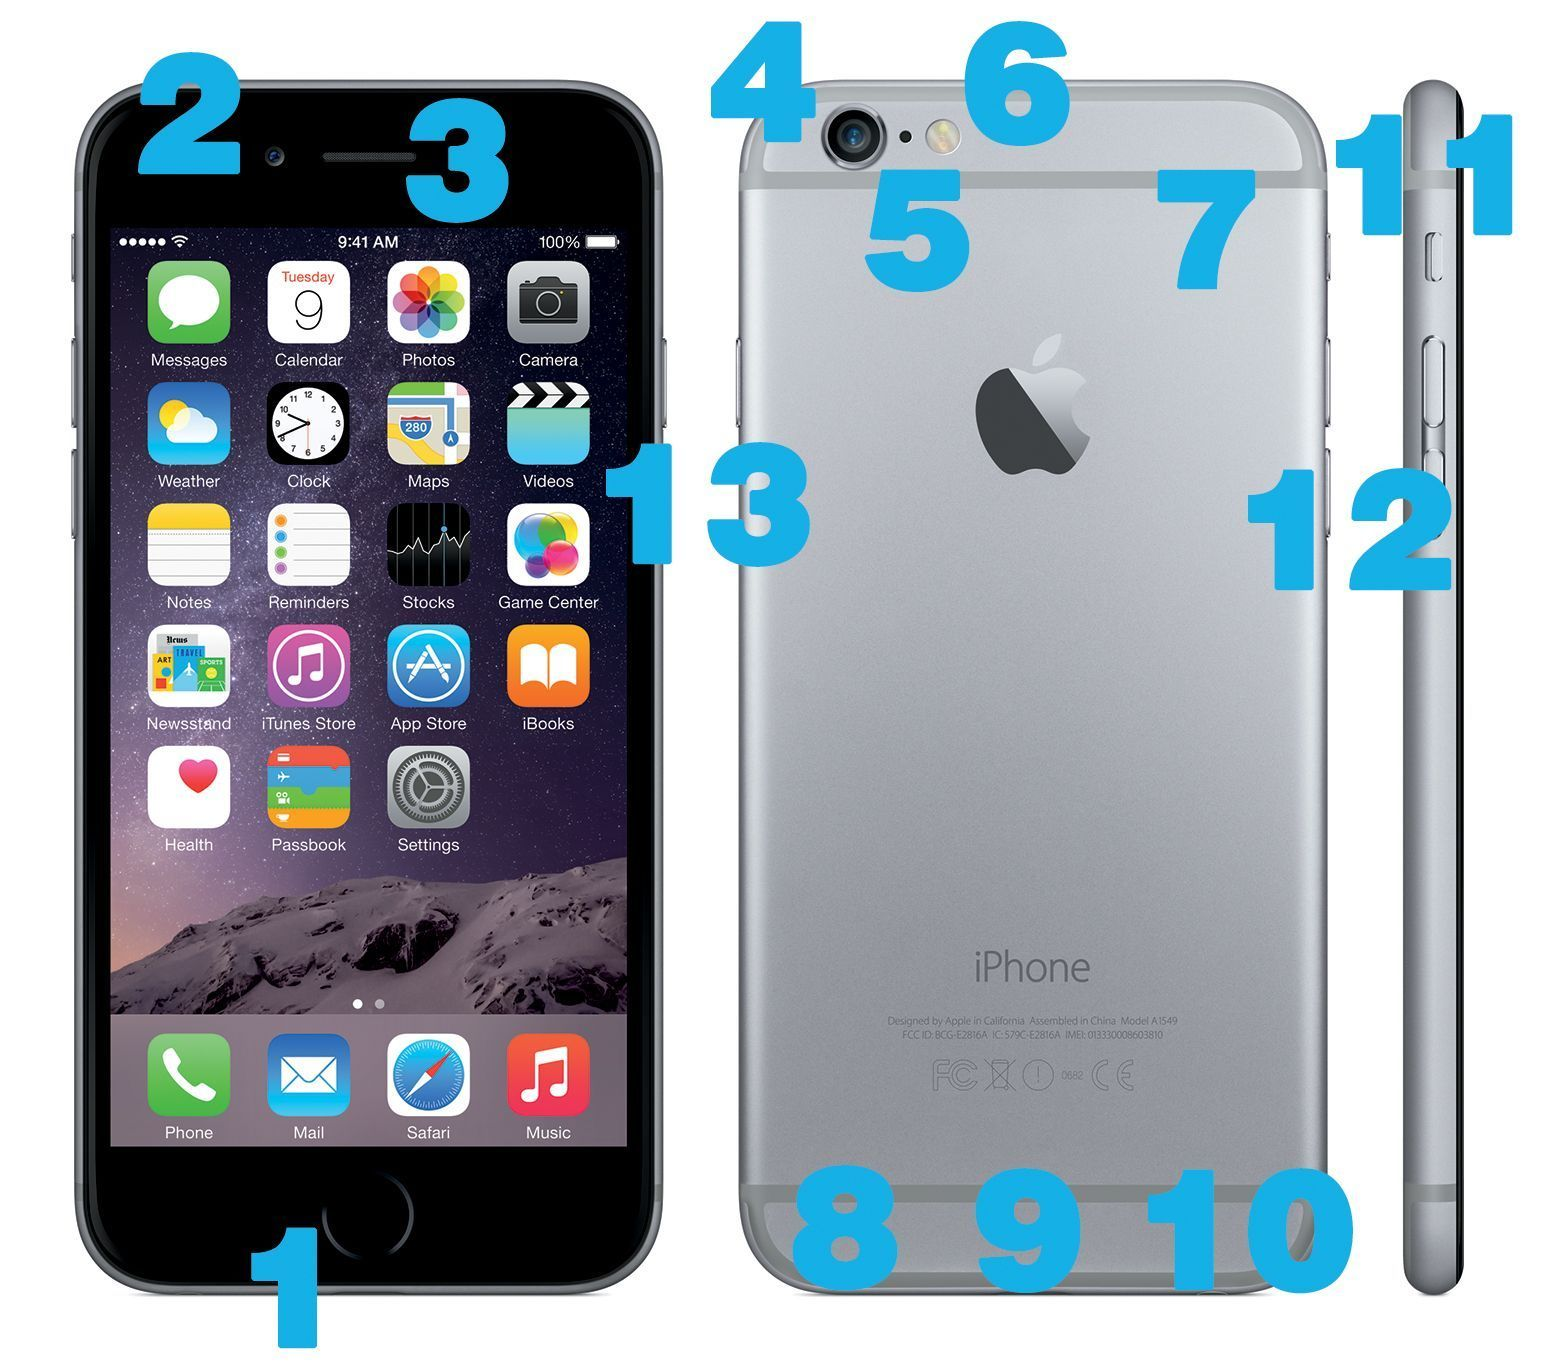 What Do the Buttons on the iPhone 6 Series Do? iPhone